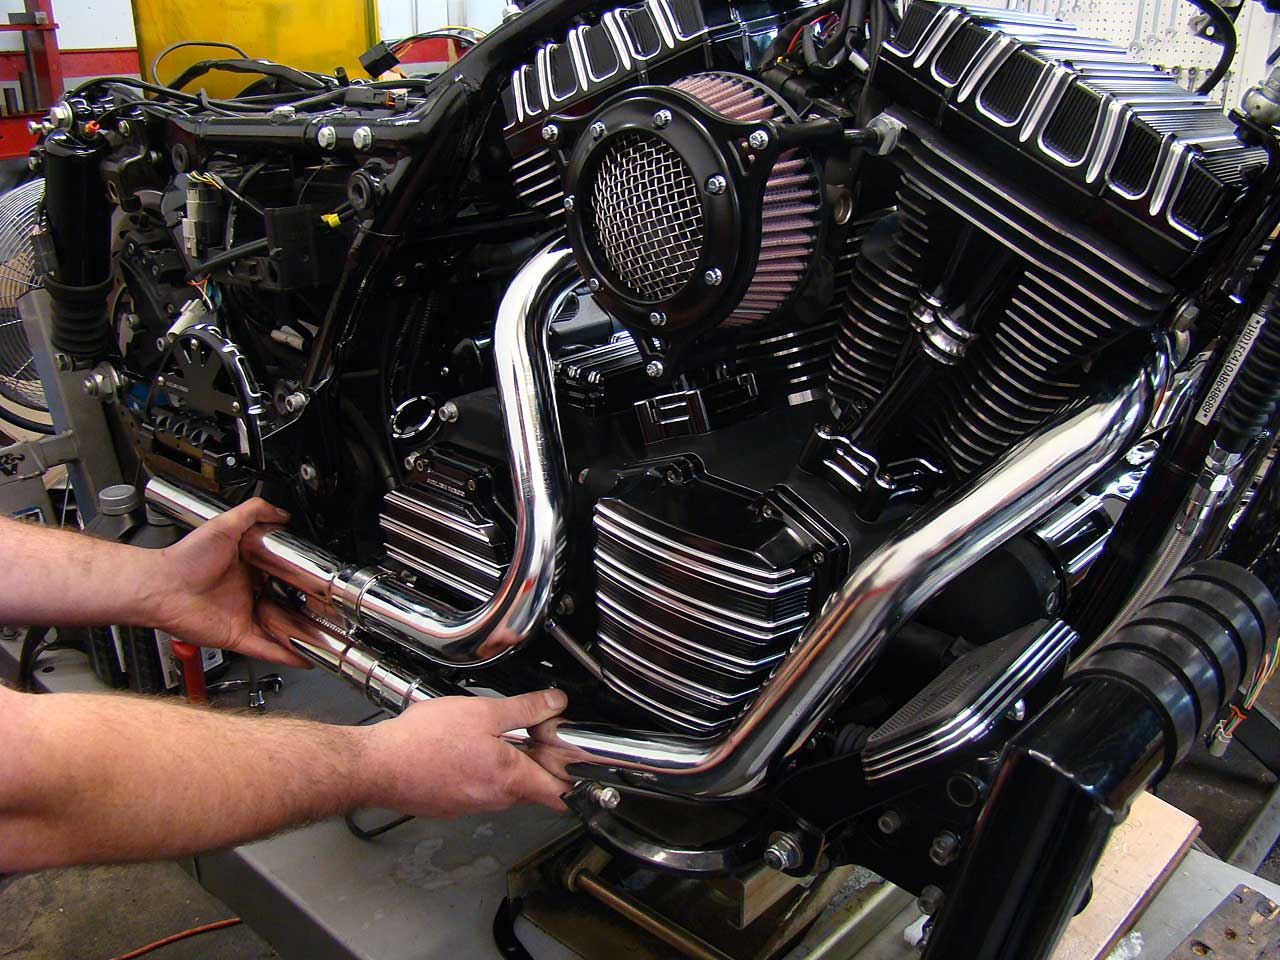 Beat the Quarantine with These Motorcycle DIY Projects